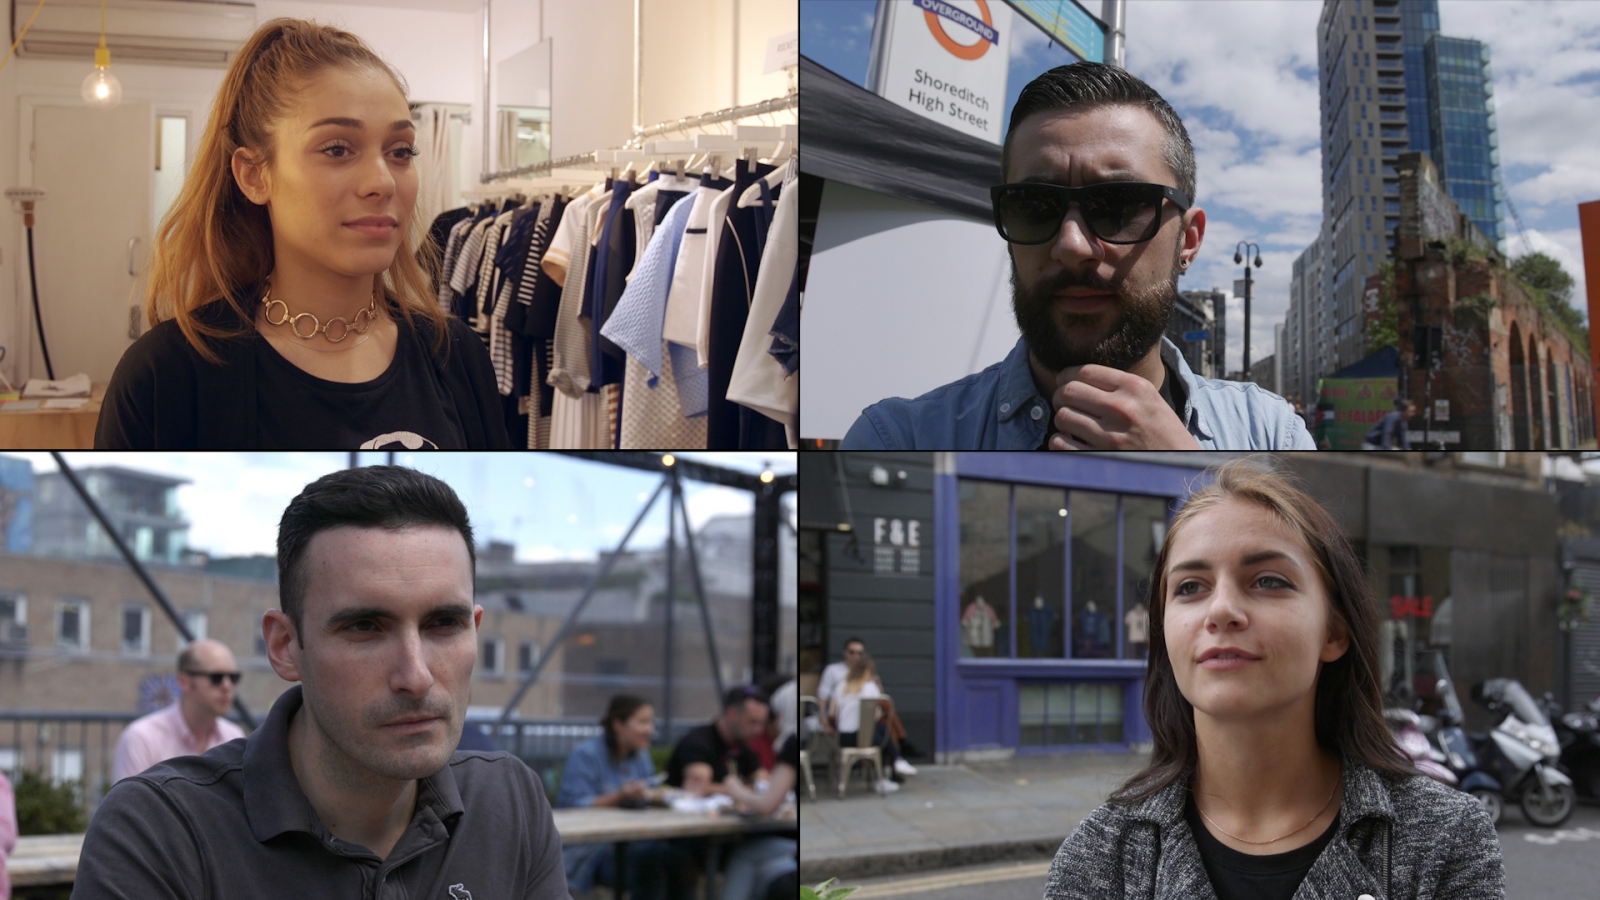 Brexit: What do London's EU nationals really think of the Leave vote?